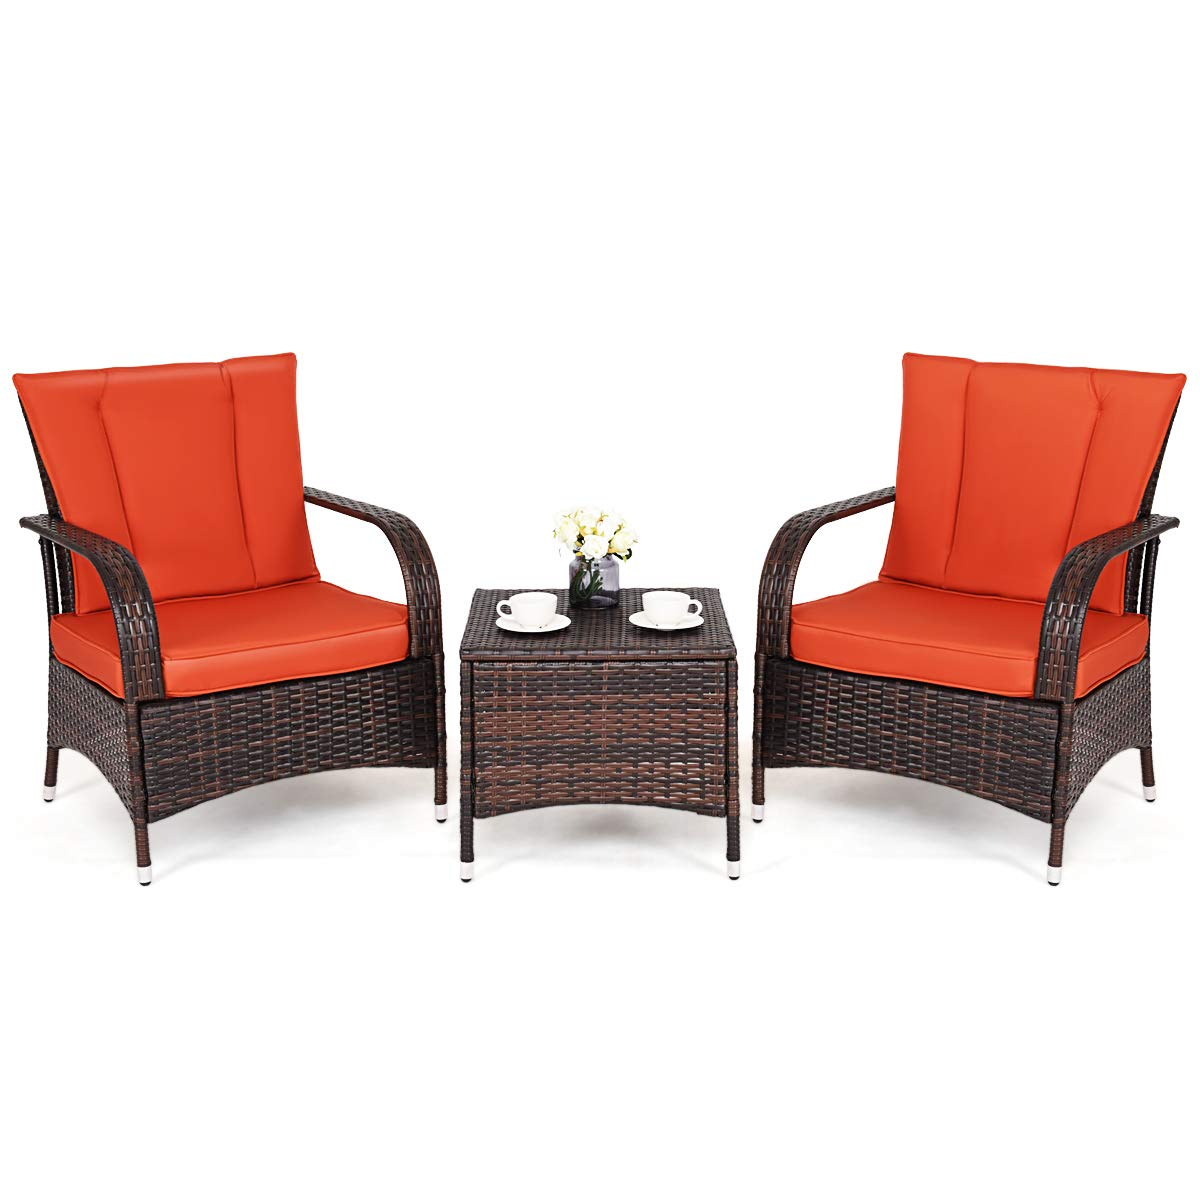 Tangkula 3 Piece Patio Furniture Set Wicker Rattan Outdoor Patio Conversation Set with 2 Cushioned Chairs End Table Backyard Garden Lawn Chat Set Chill Time Modern Outdoor Furniture Orange